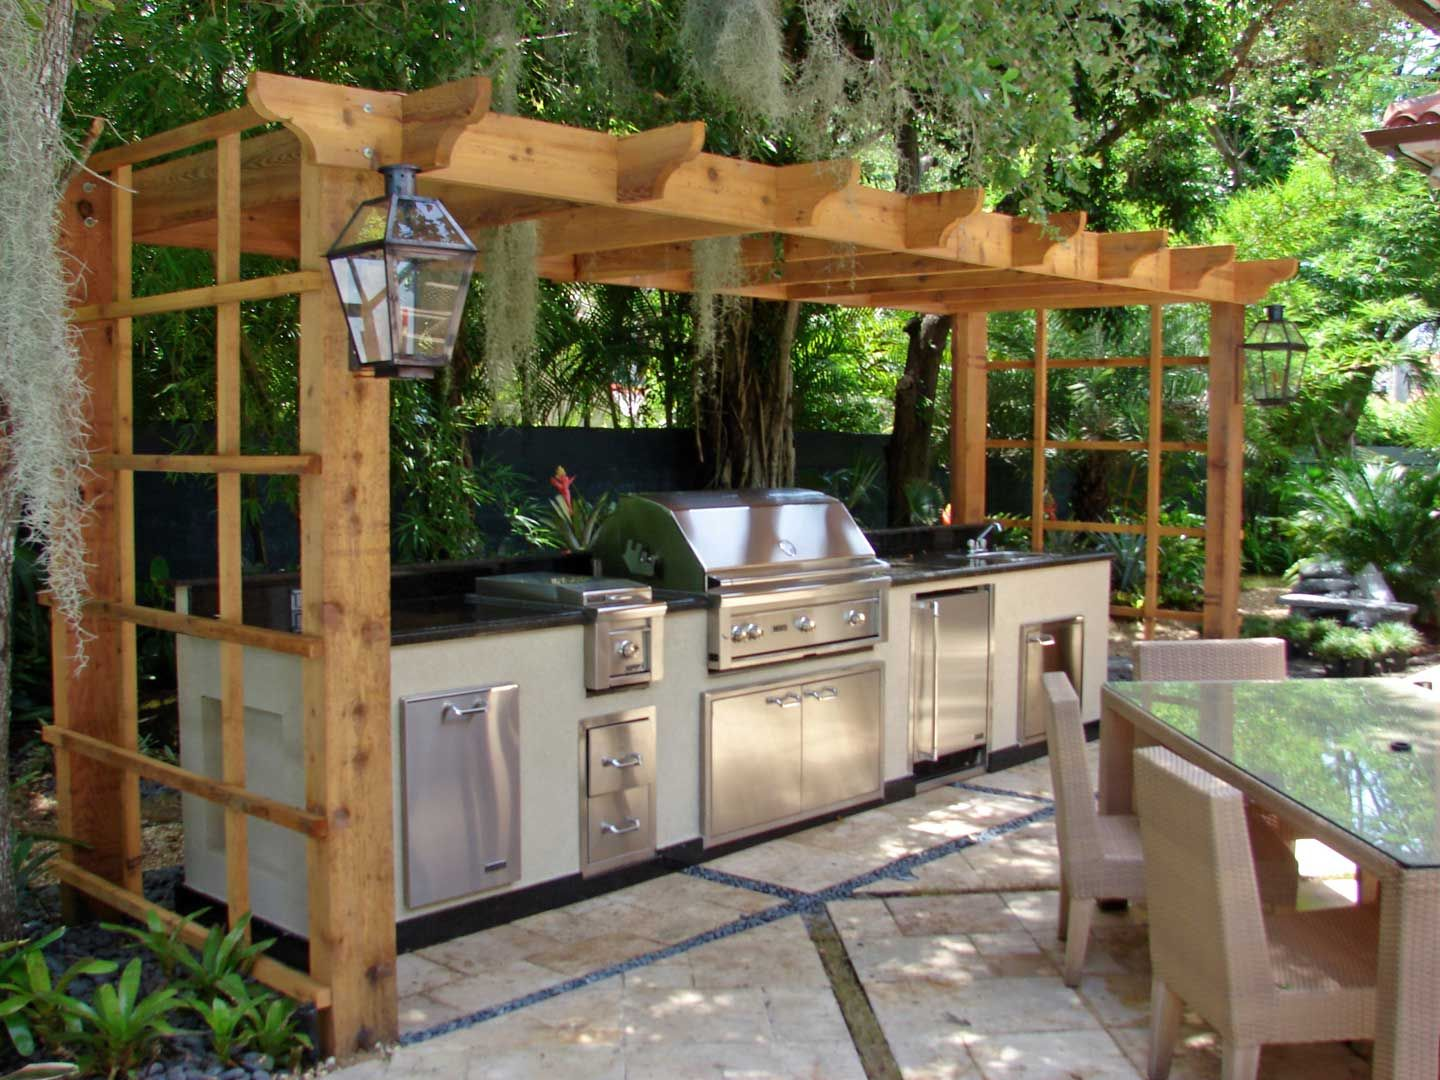 Outdoor Kitchen Design Ideas Part - 35: Outdoor Kitchen Design Ideas ~ Cook Outdoors In Style By Changing Your  Backyard Or Outdoor Patio Into A Special Outdoor Kitchen Area For  Entertaining Family ...